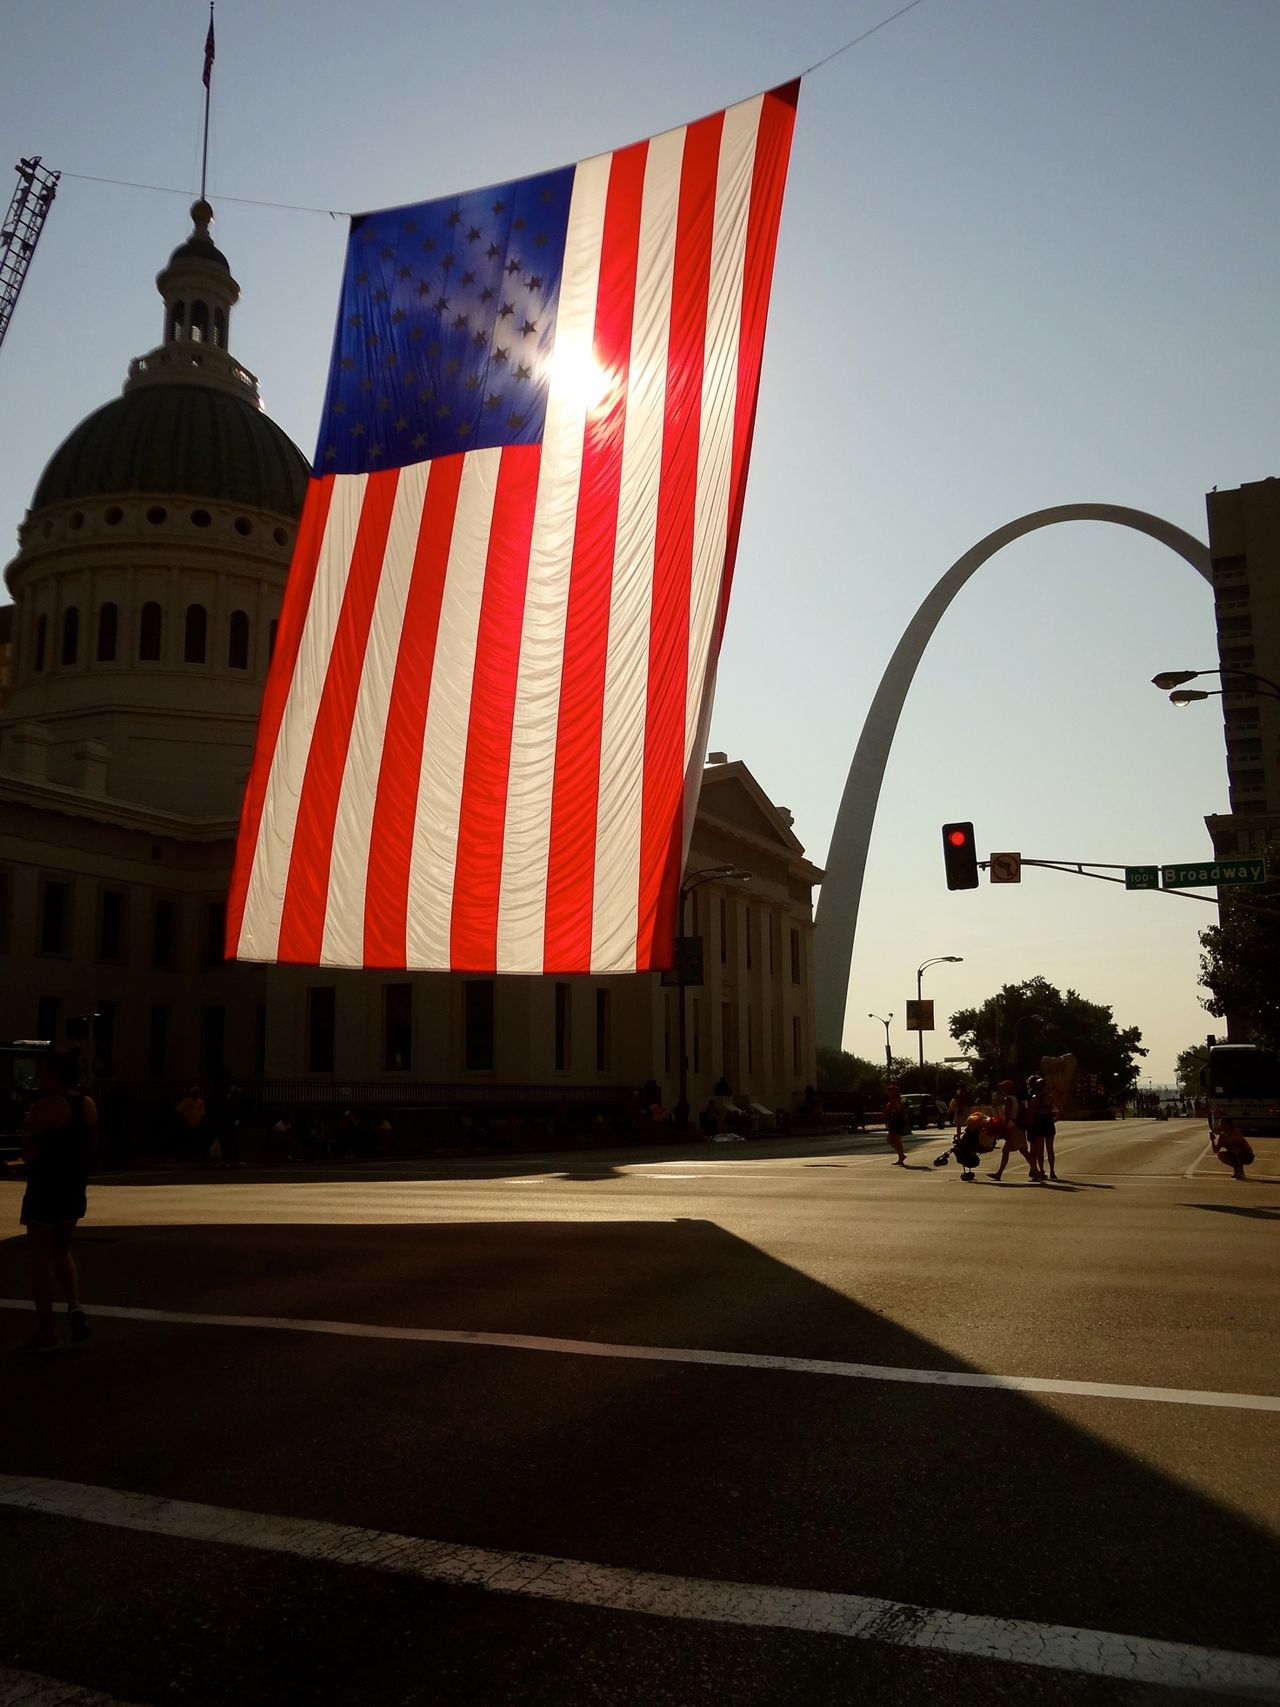 Throw A Curve Travelling Photography St Louis St Louis Arch Portrait Of America Growing Better Holiday POV